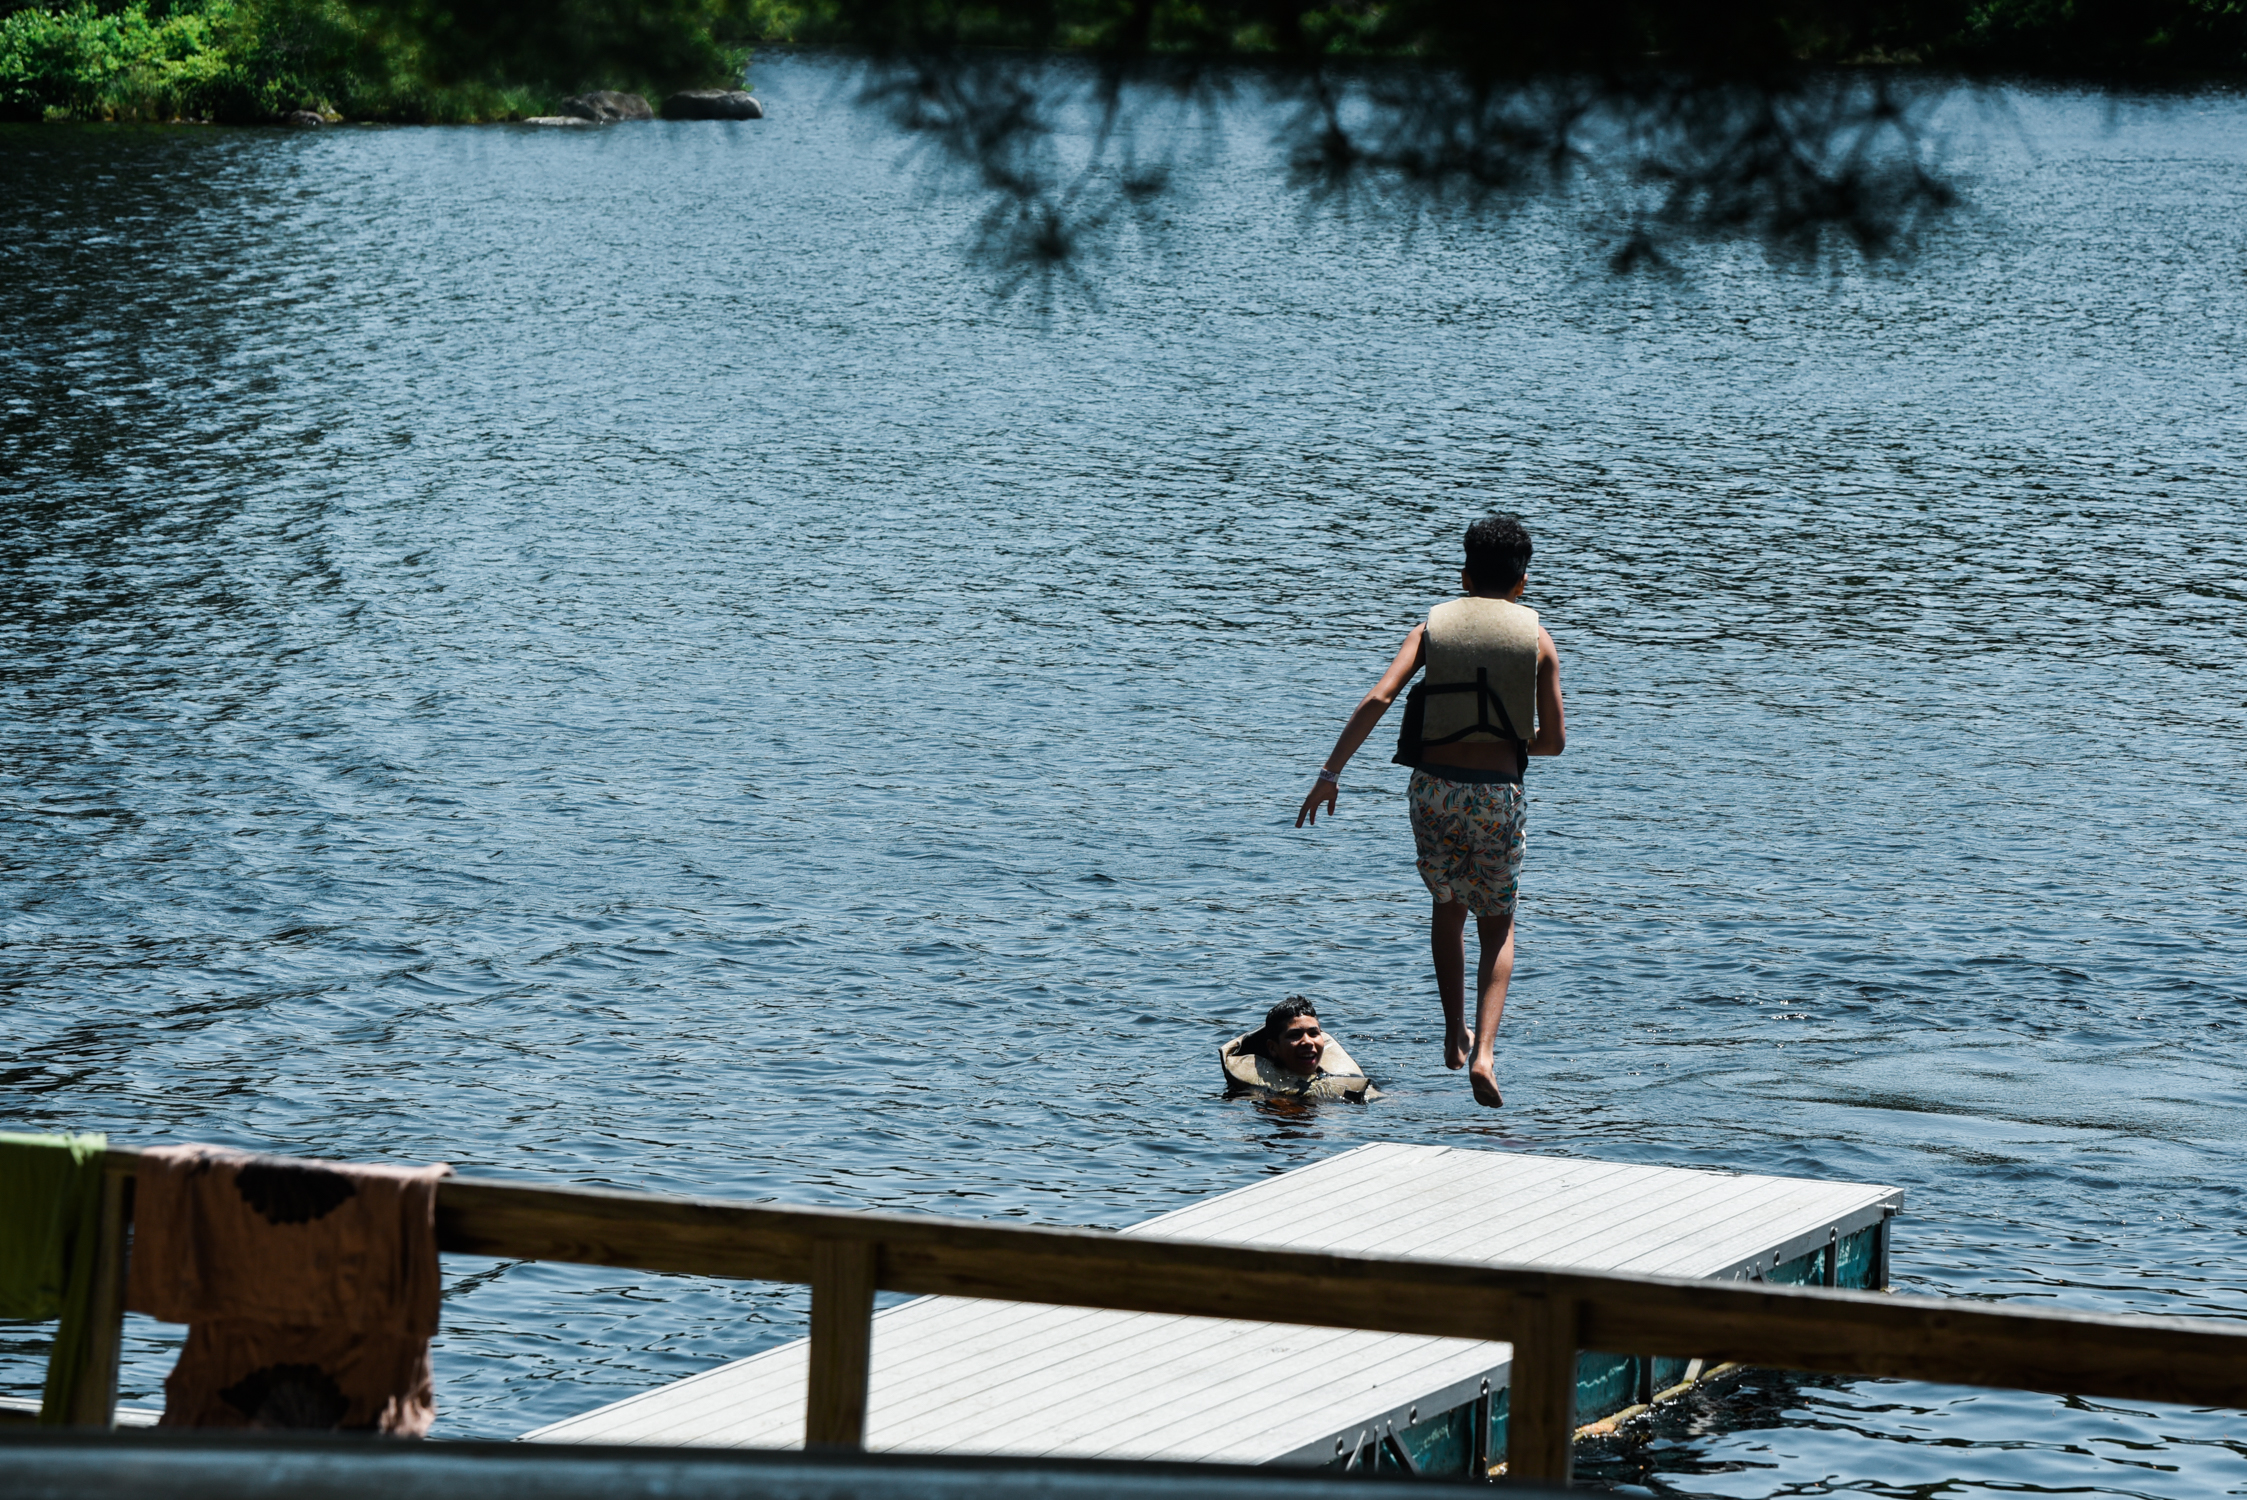 ephemera designs photography unifier festival - person jumping off dock into water with friend